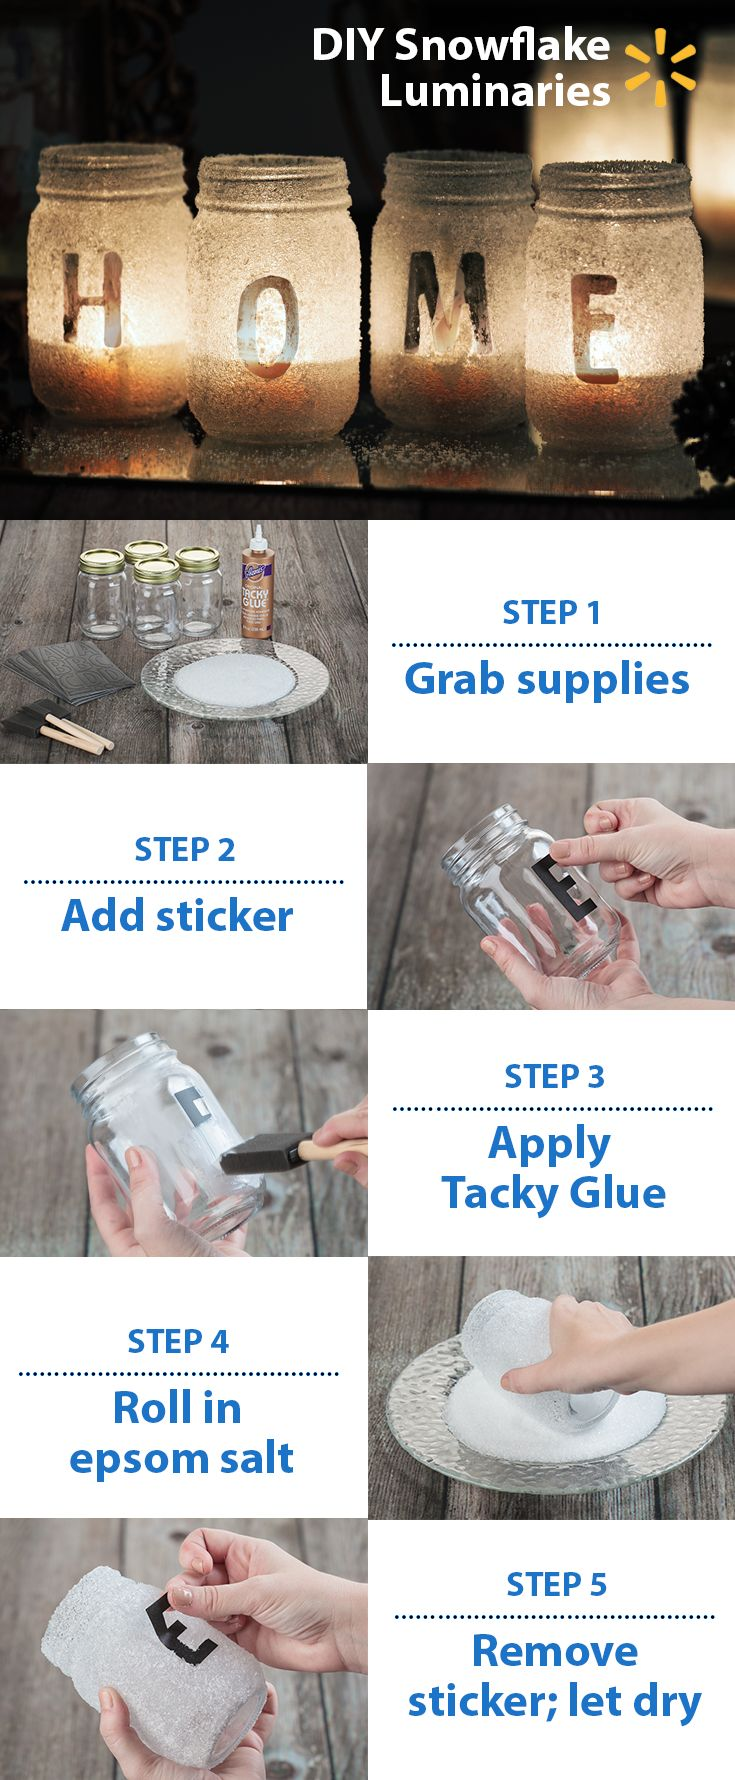 These pretty DIY snowflake luminaries are so easy to make using a few simple supplies from your local Walmart! Pick up some Aleene's Tacky Glue, epsom salt, mason jars, and stickers and get your winter creativity on!